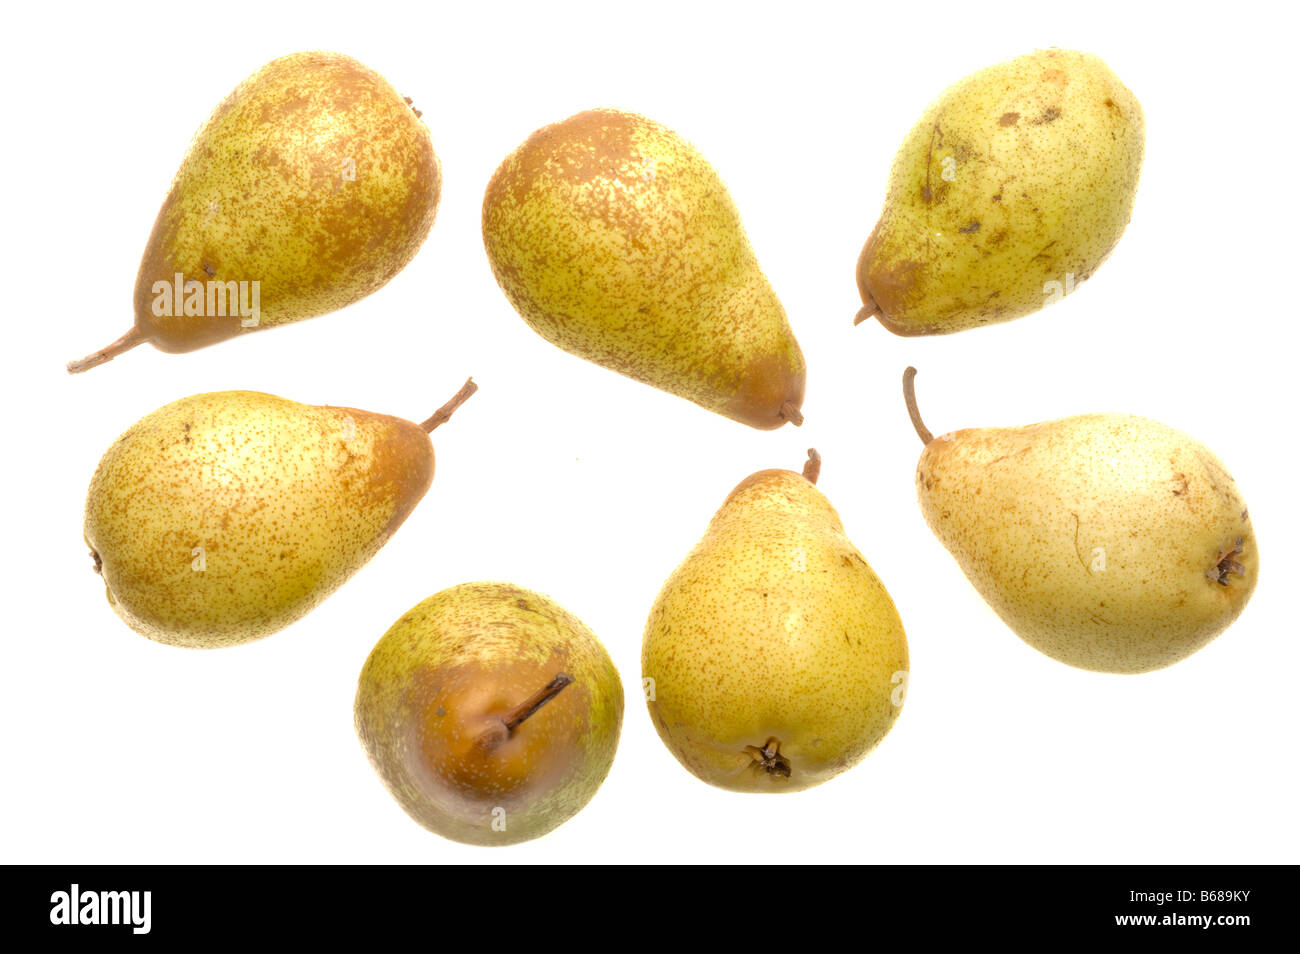 Seven different pears 33